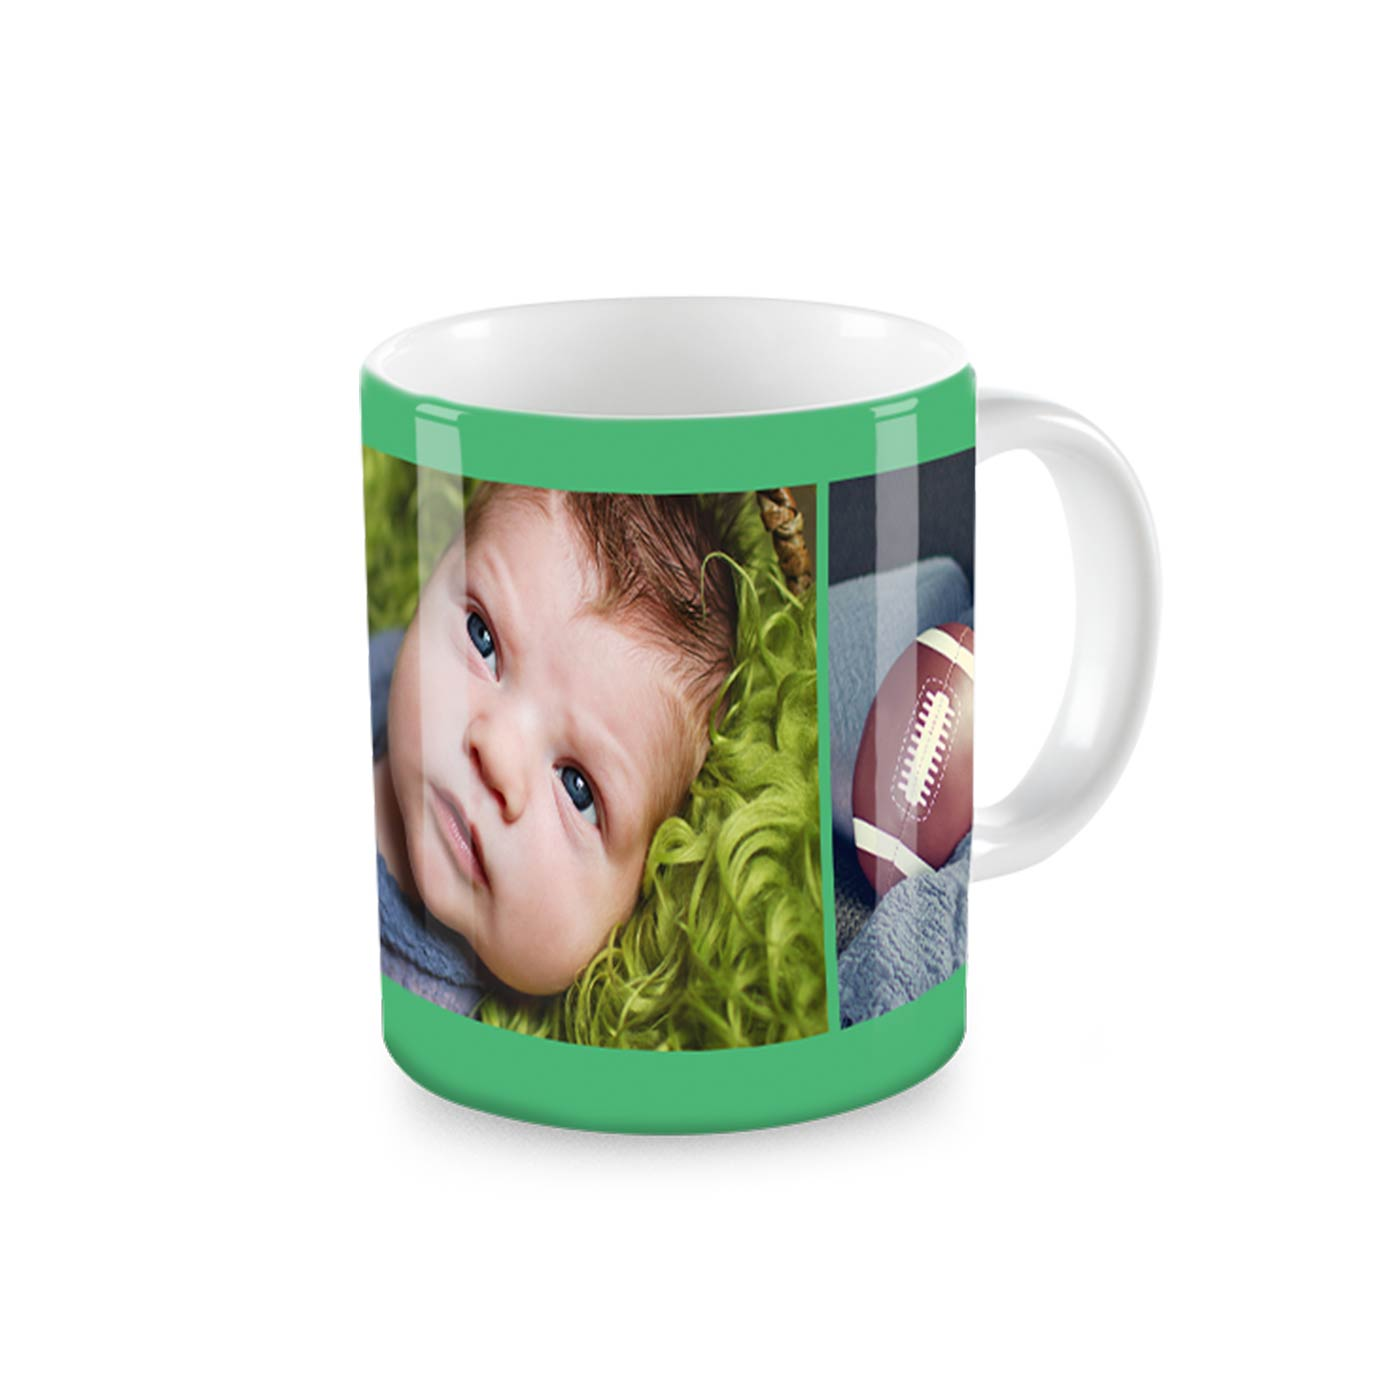 Personalized coffee mugs raleigh nc - Classic Photo Mug Create A Custom 11 Oz Classic Mug Walgreens Photo